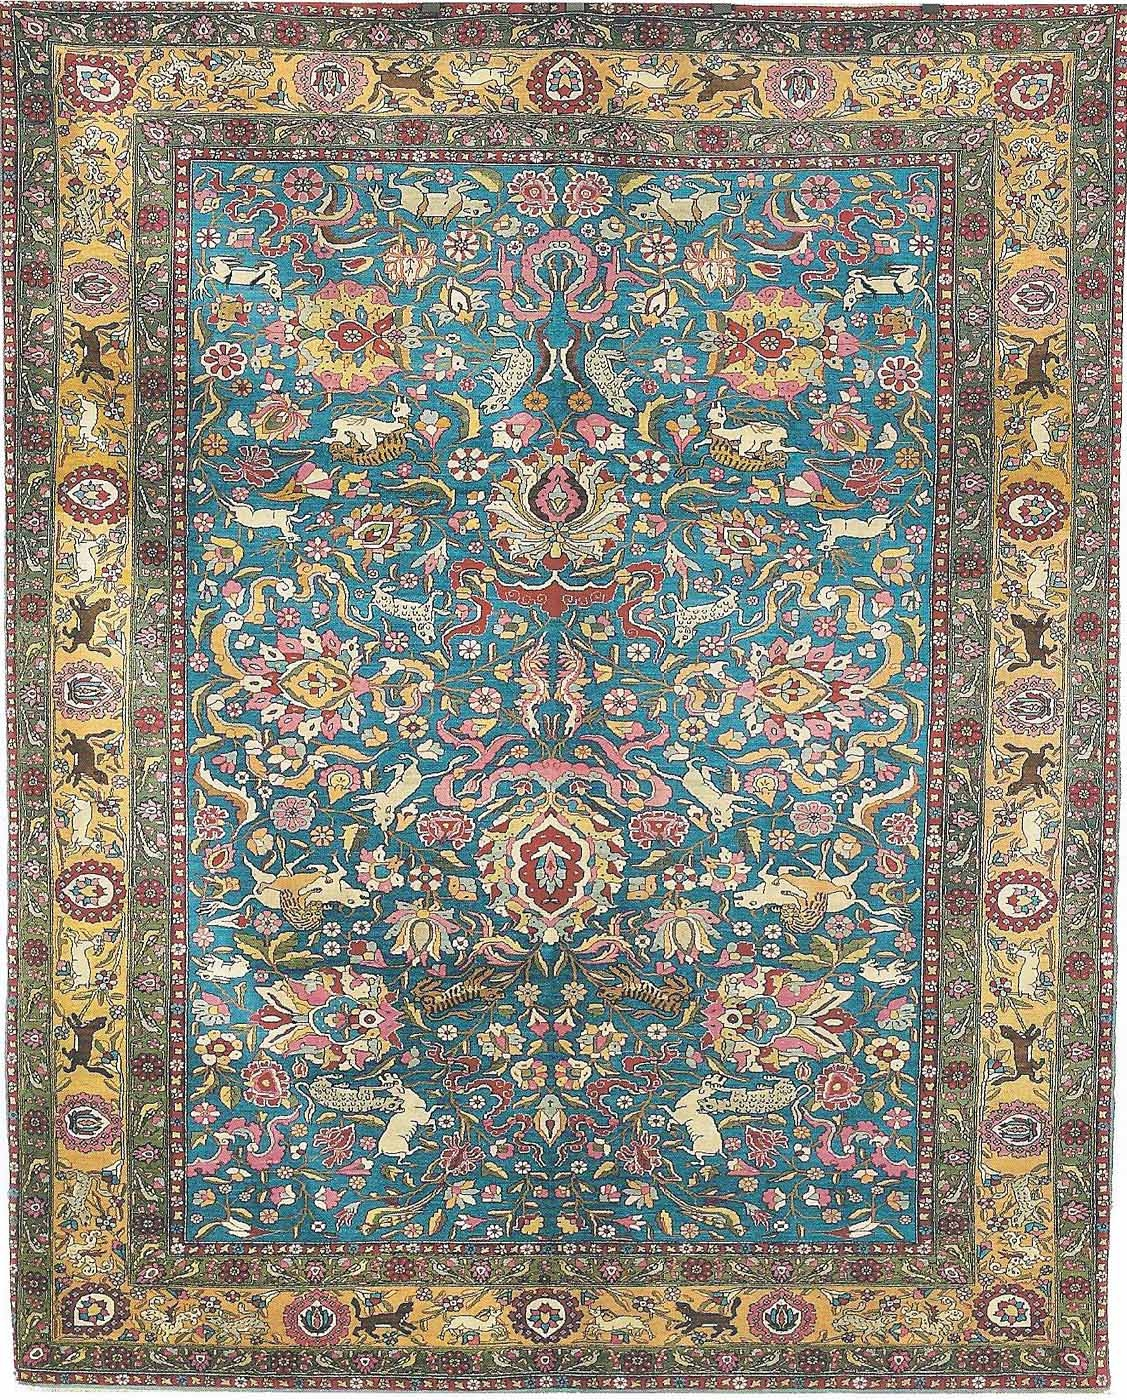 Persian Rugs Price Guide With Oriental Rugs (View 7 of 15)